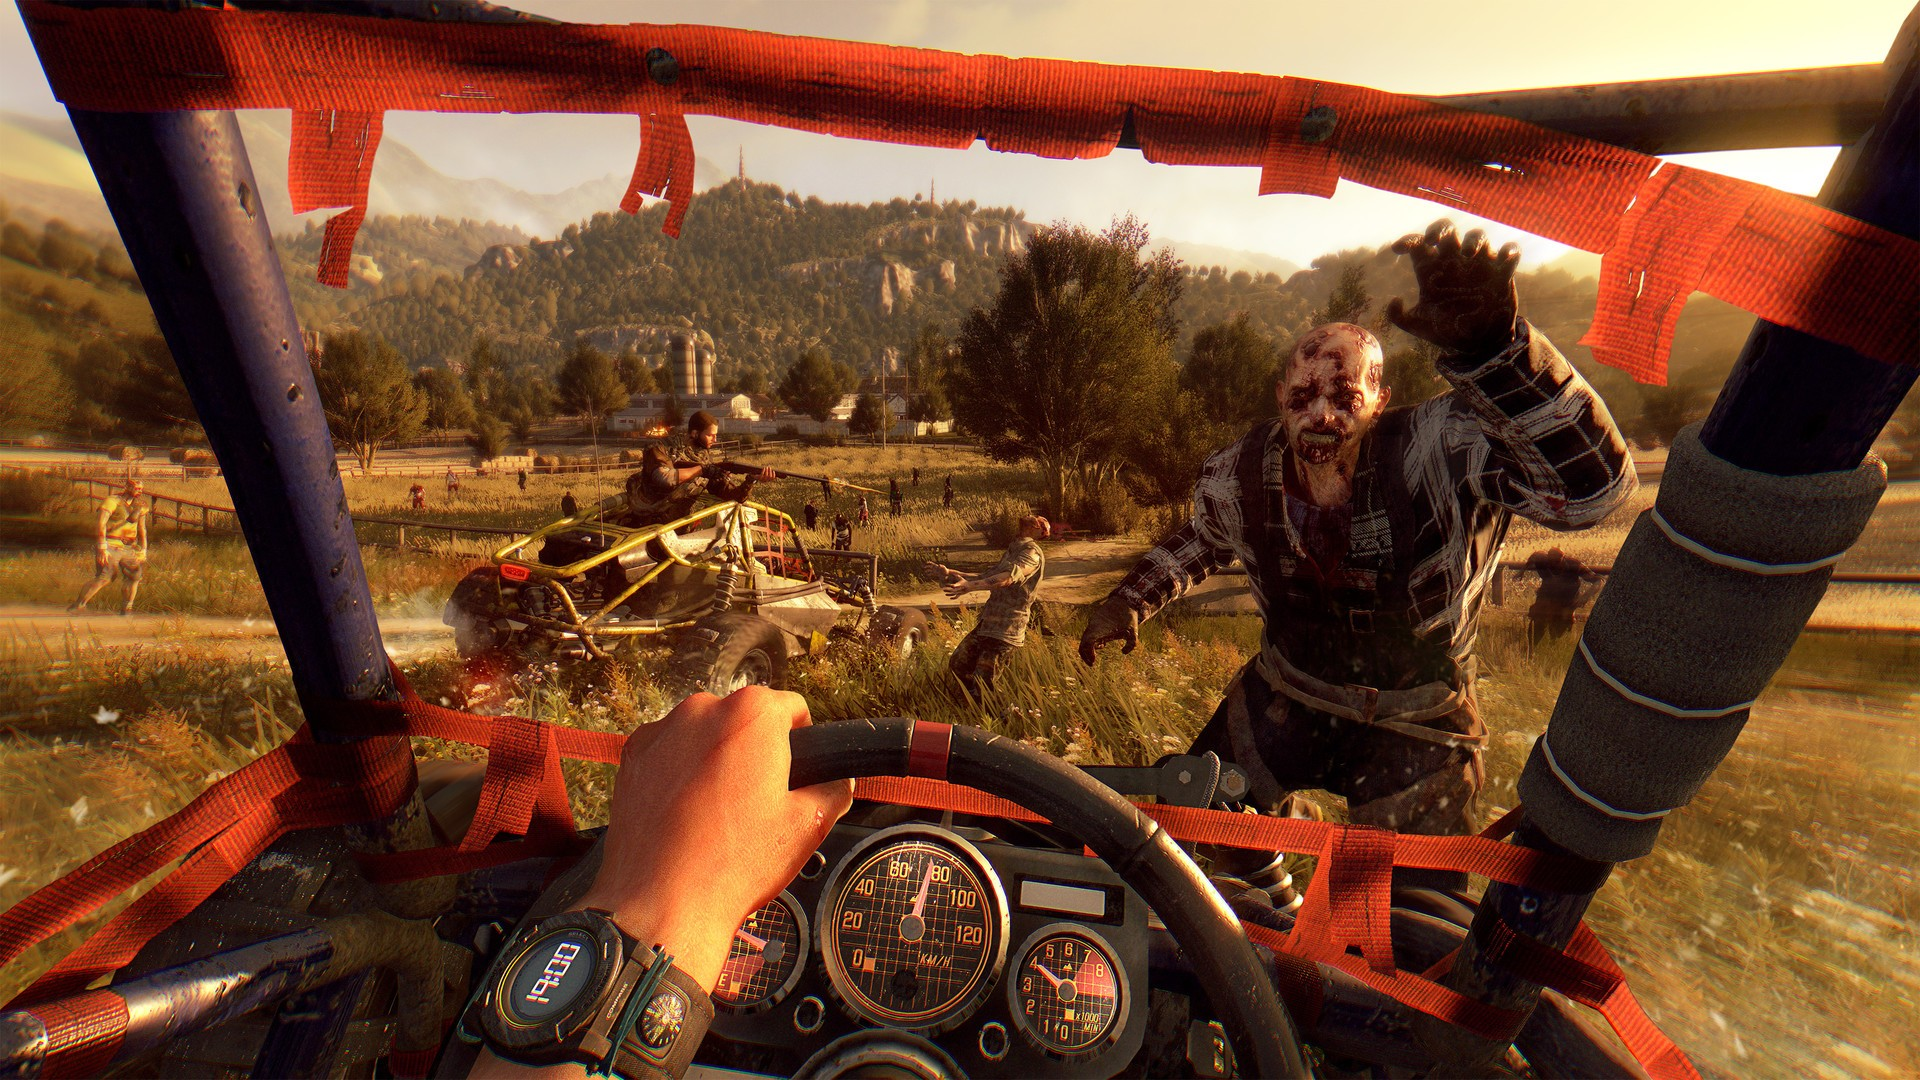 Dying Light The Next Enhanced Edition For PC